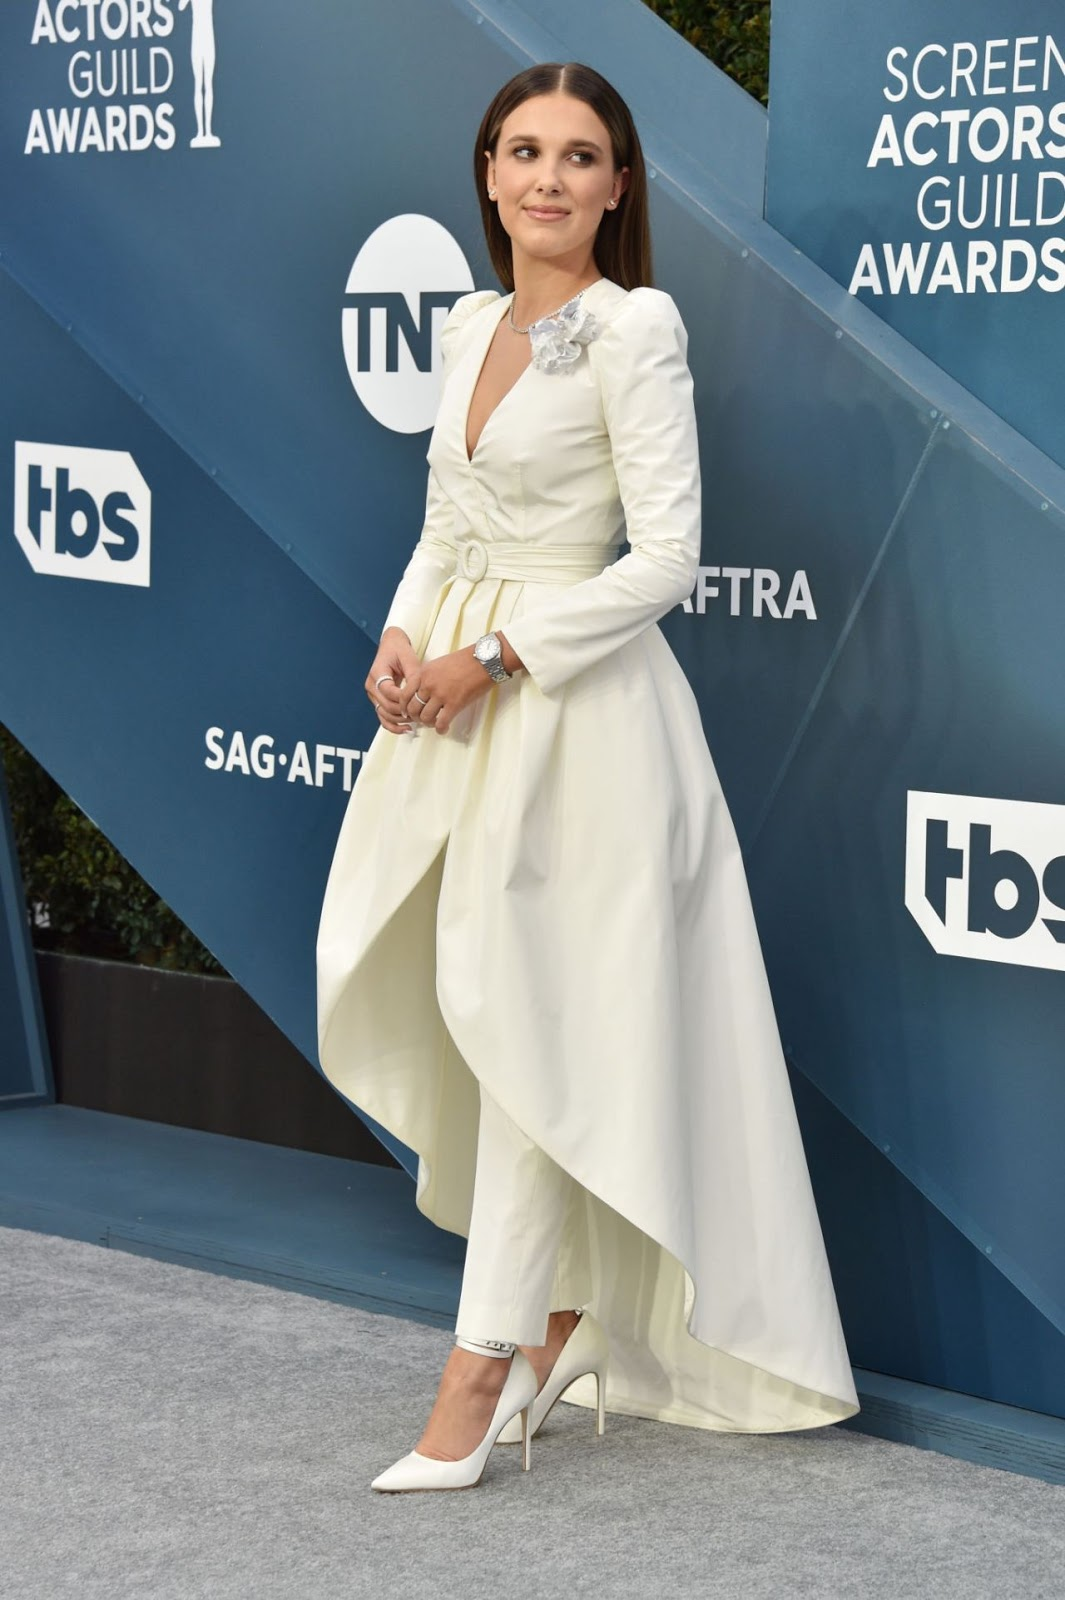 Millie Bobby Brown's SAG Red Carpet Look is Very Glam '80s Bridal